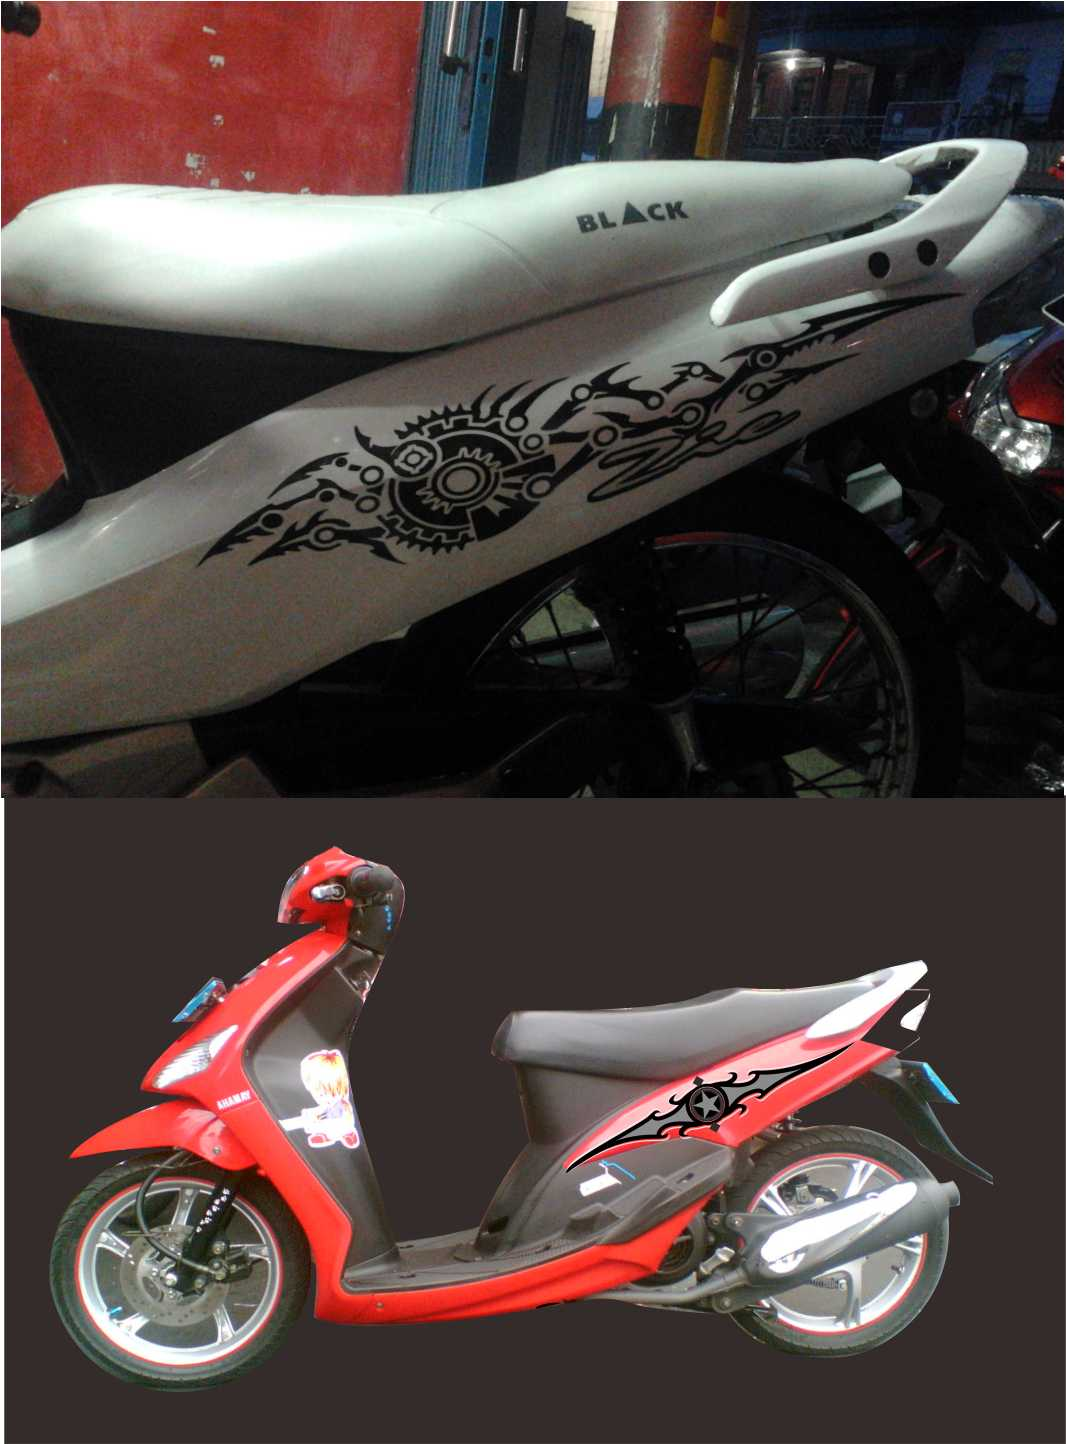 Wonosobo Express Semeru Discovery Semeru Trekking Tour Express Sticker Art Profesional Cutting Stickerkertekwonosobo